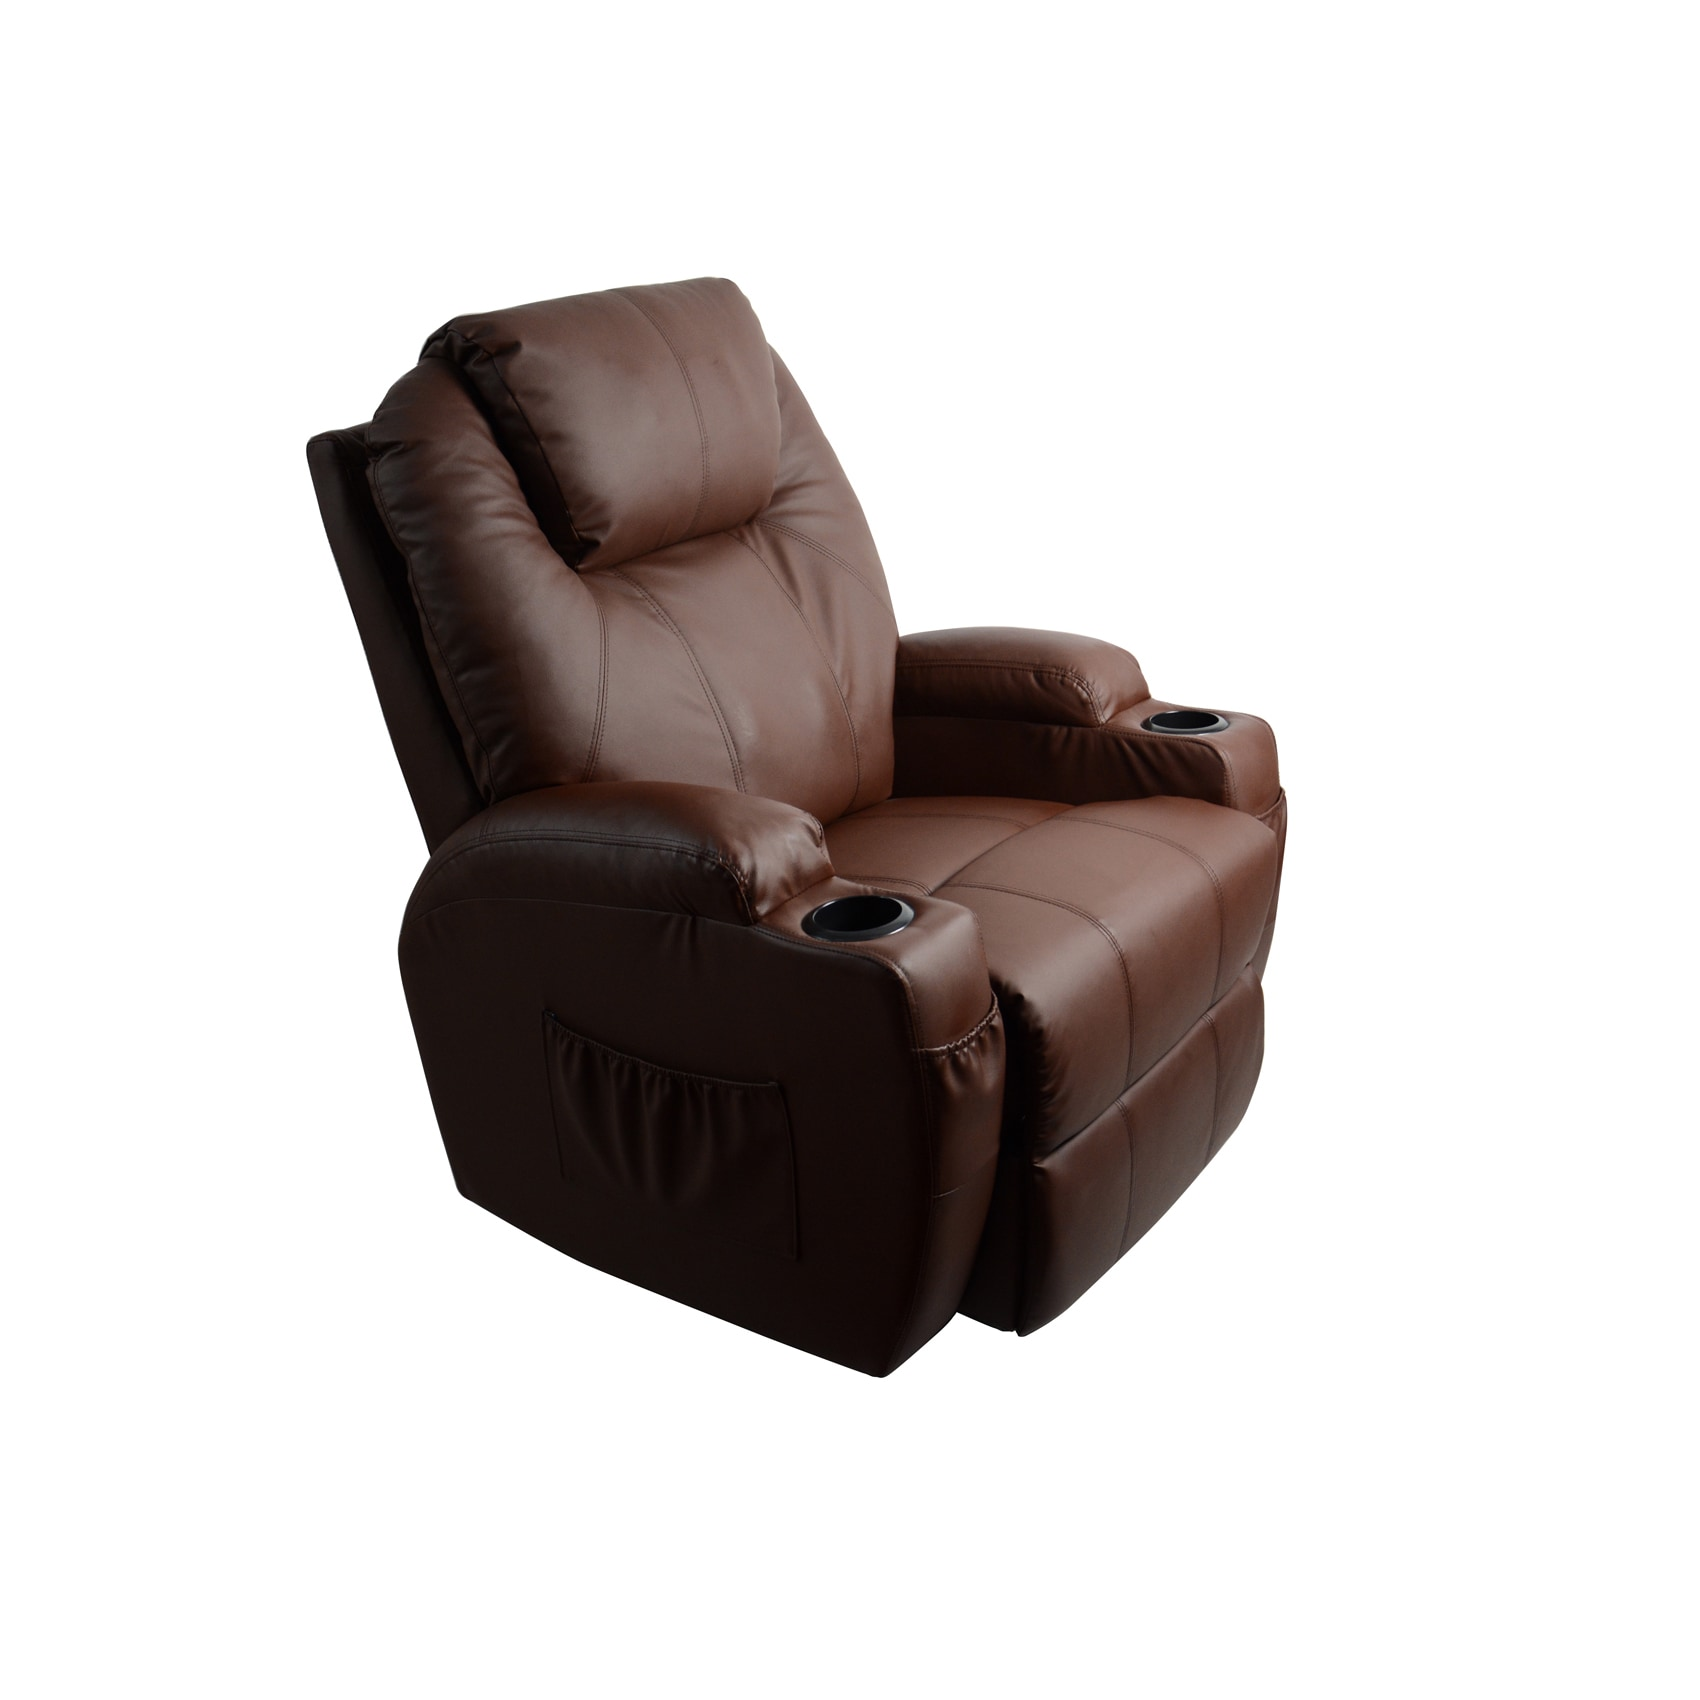 Amazing Mcombo Brown Massage Recliner Vibrating Sofa Heated Leather Bralicious Painted Fabric Chair Ideas Braliciousco